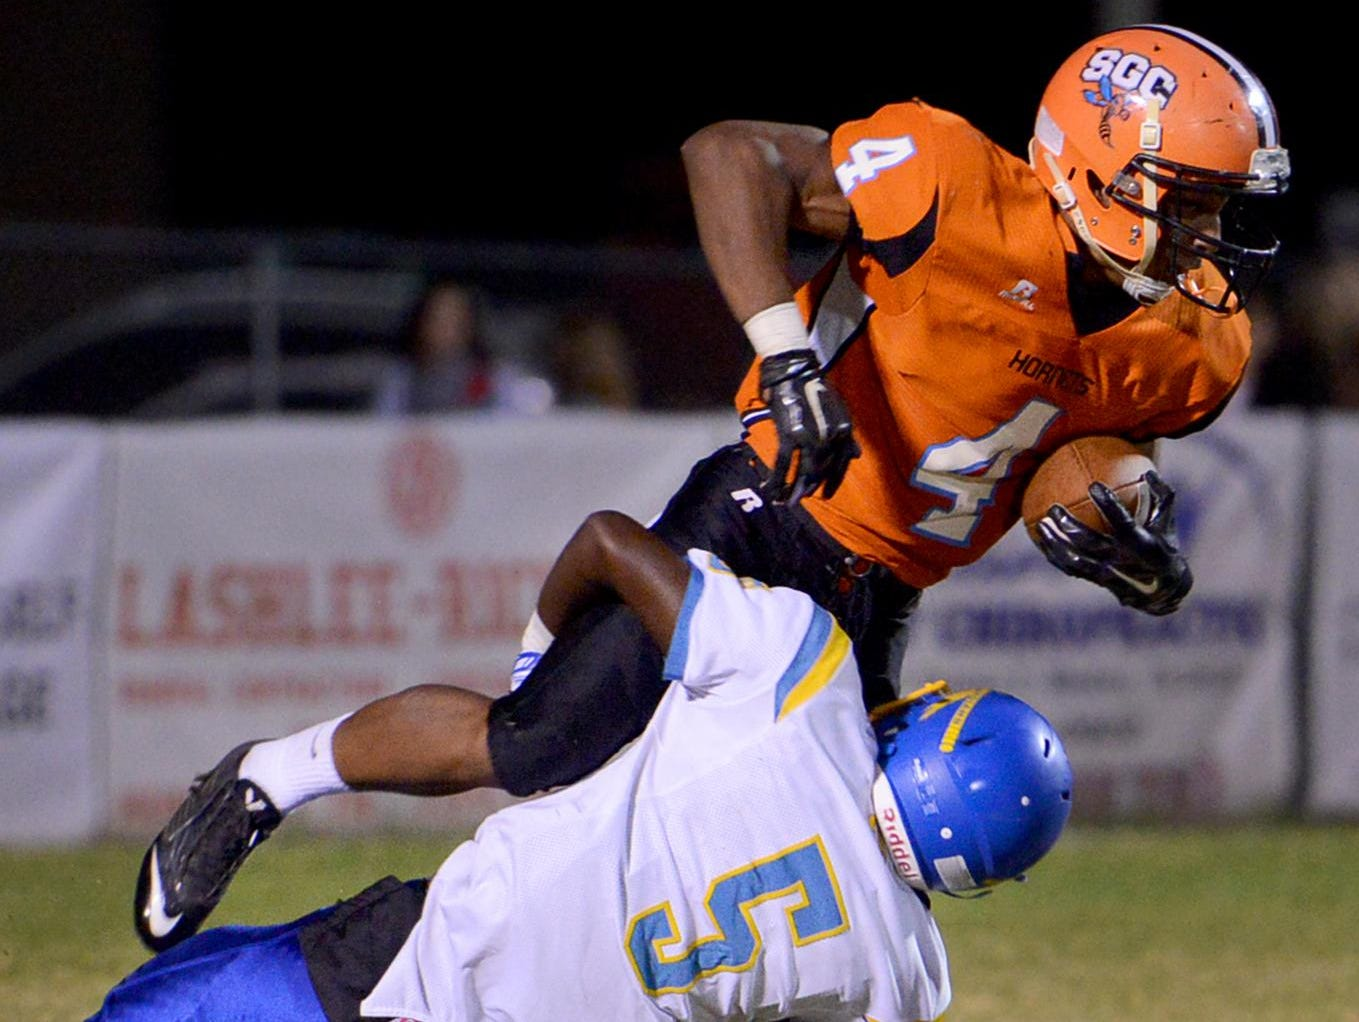 Tyler Dysart (4) and the South Gibson Hornets hope to improve upon a disappointing 2014 season.